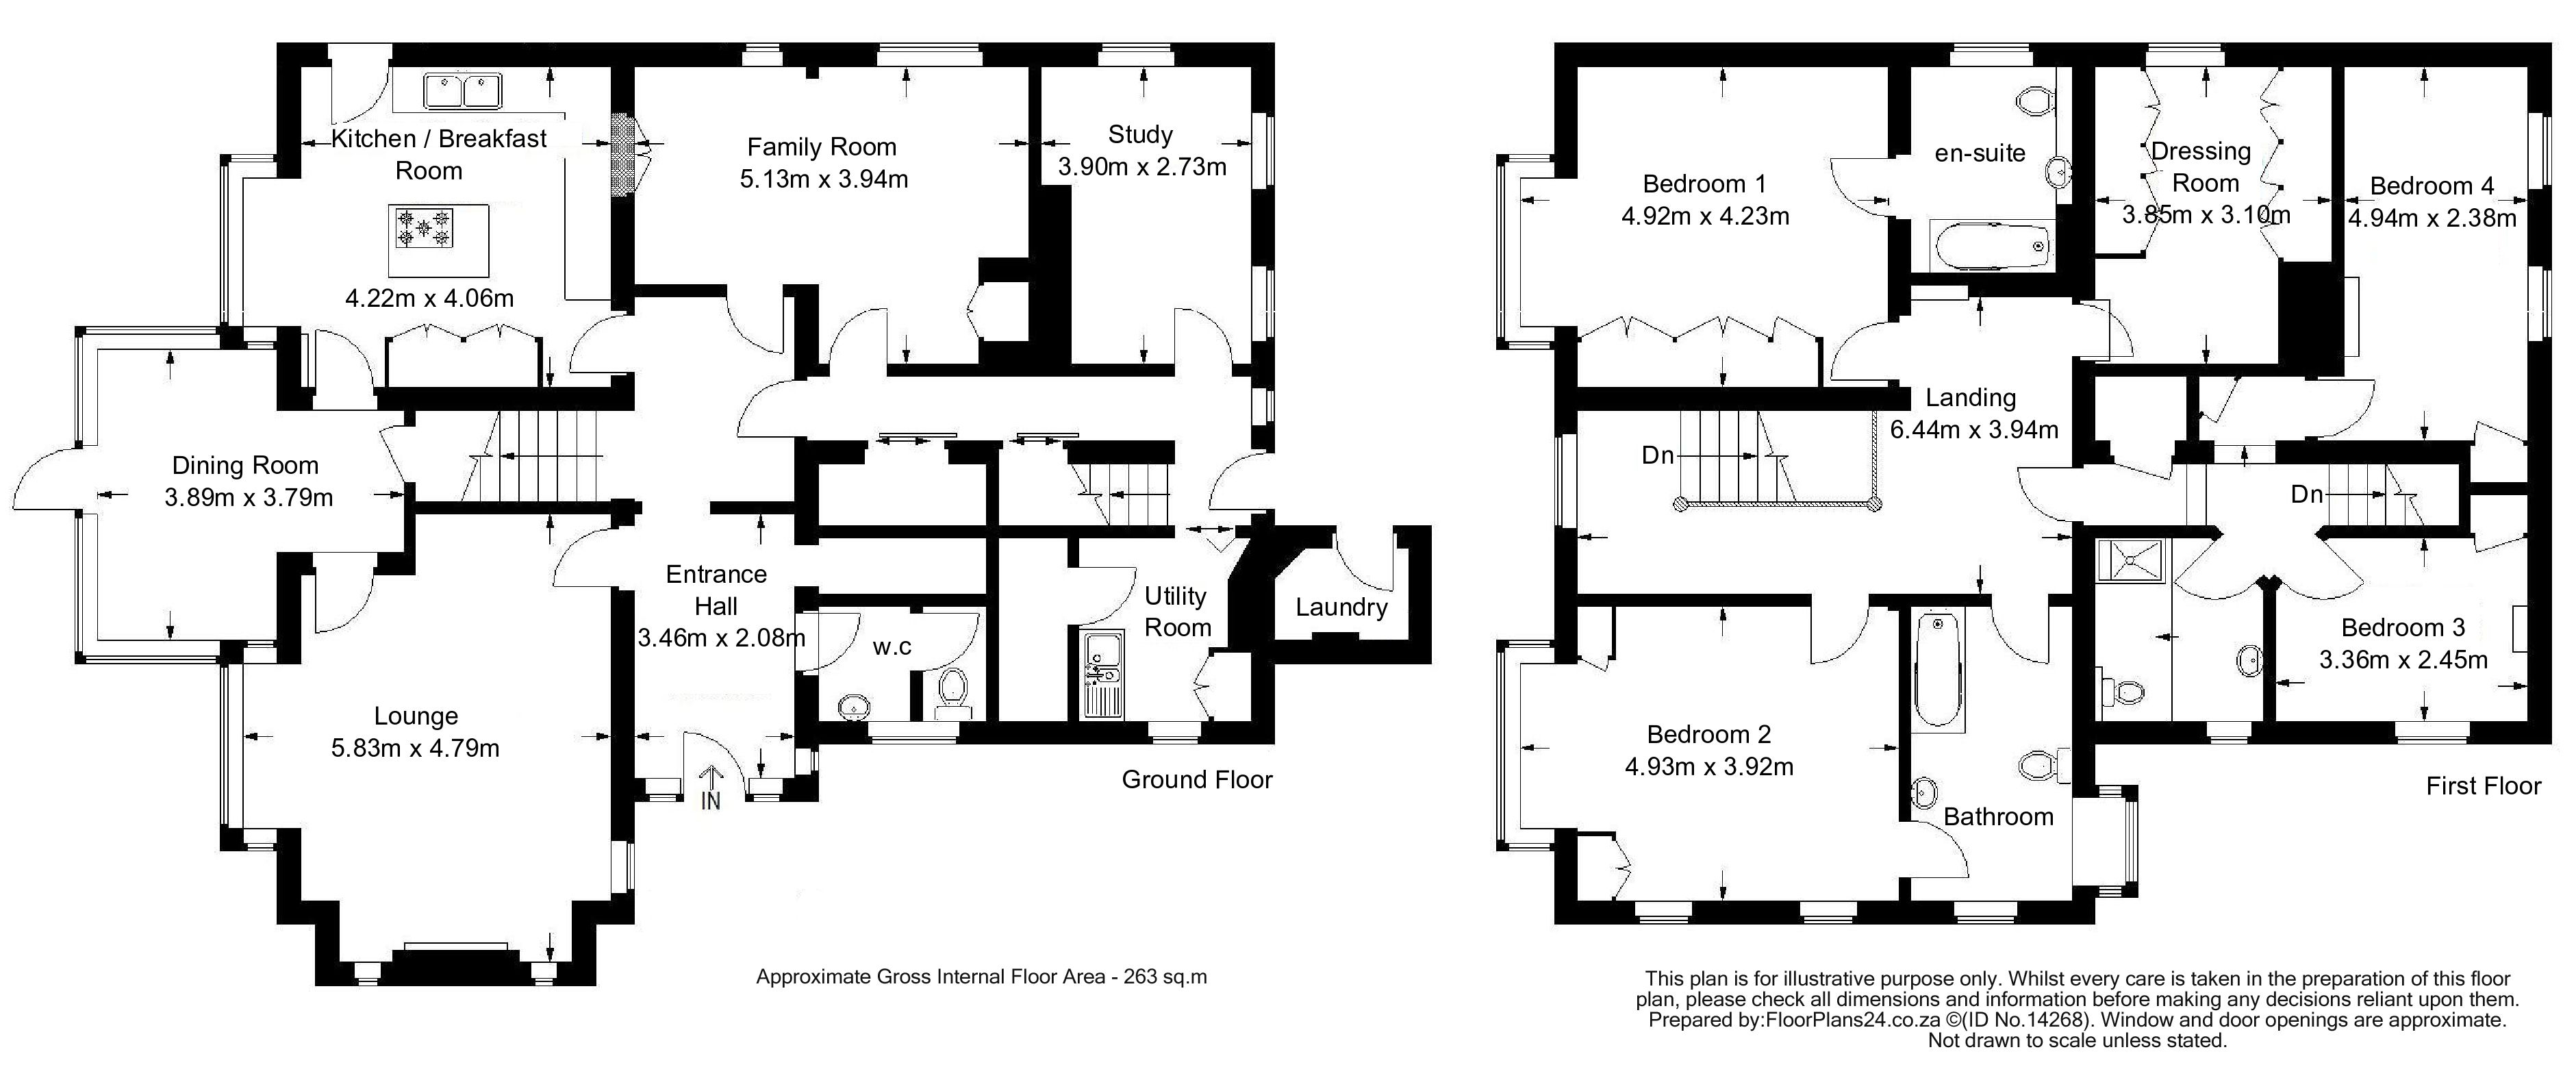 Classic Layout - 4 Bedroom - 263 sq.m - FloorPlans24 delivers a solution that works for YOU – Talk to us…